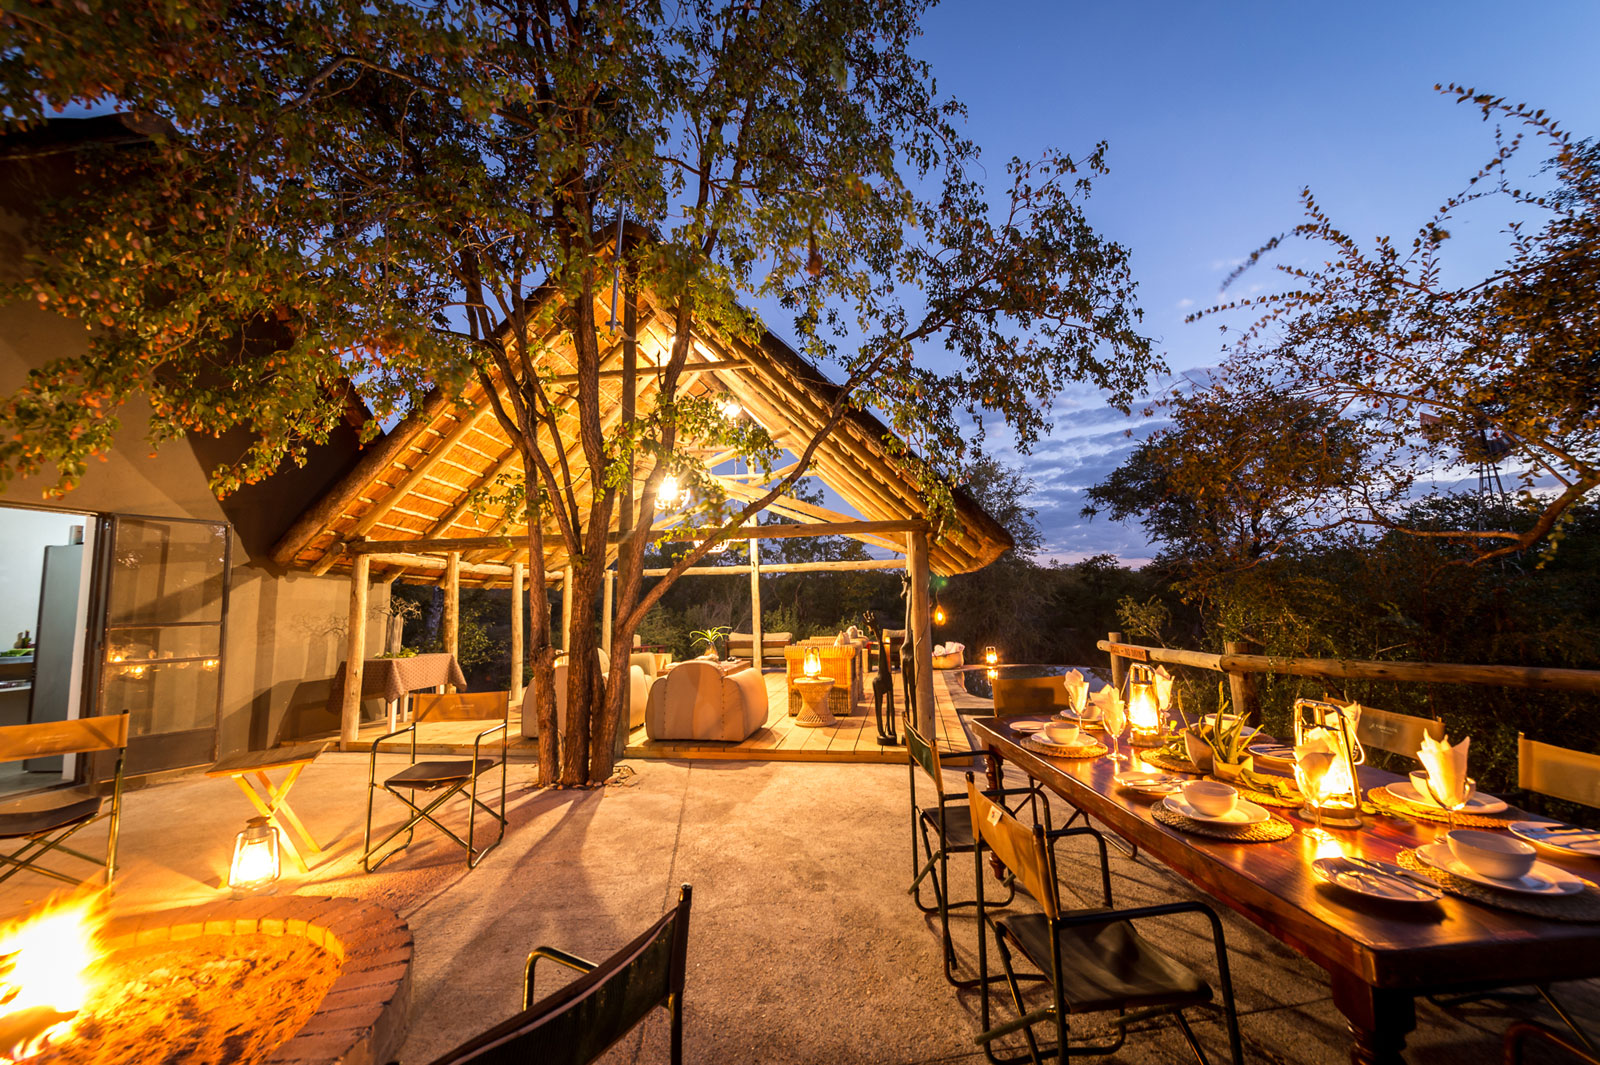 Boma Area Nsala Safari Camp